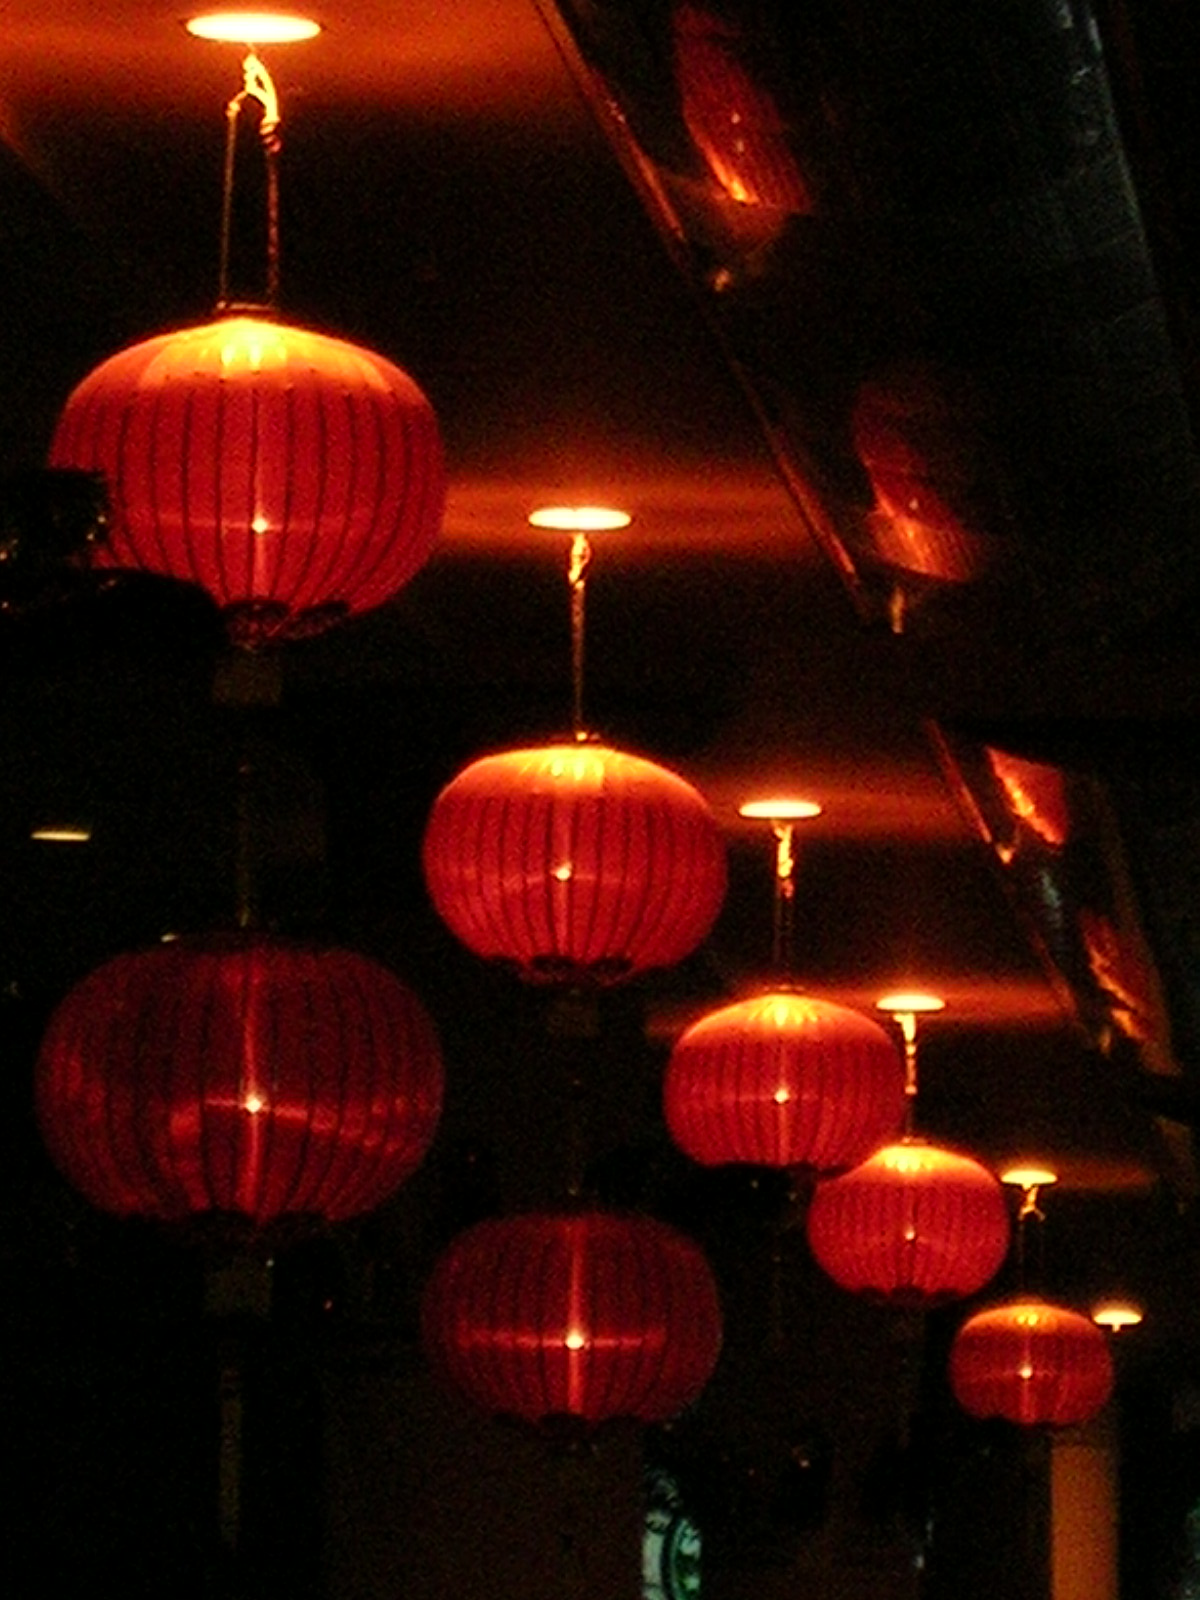 http://upload.wikimedia.org/wikipedia/commons/9/9e/Red_lanterns.JPG